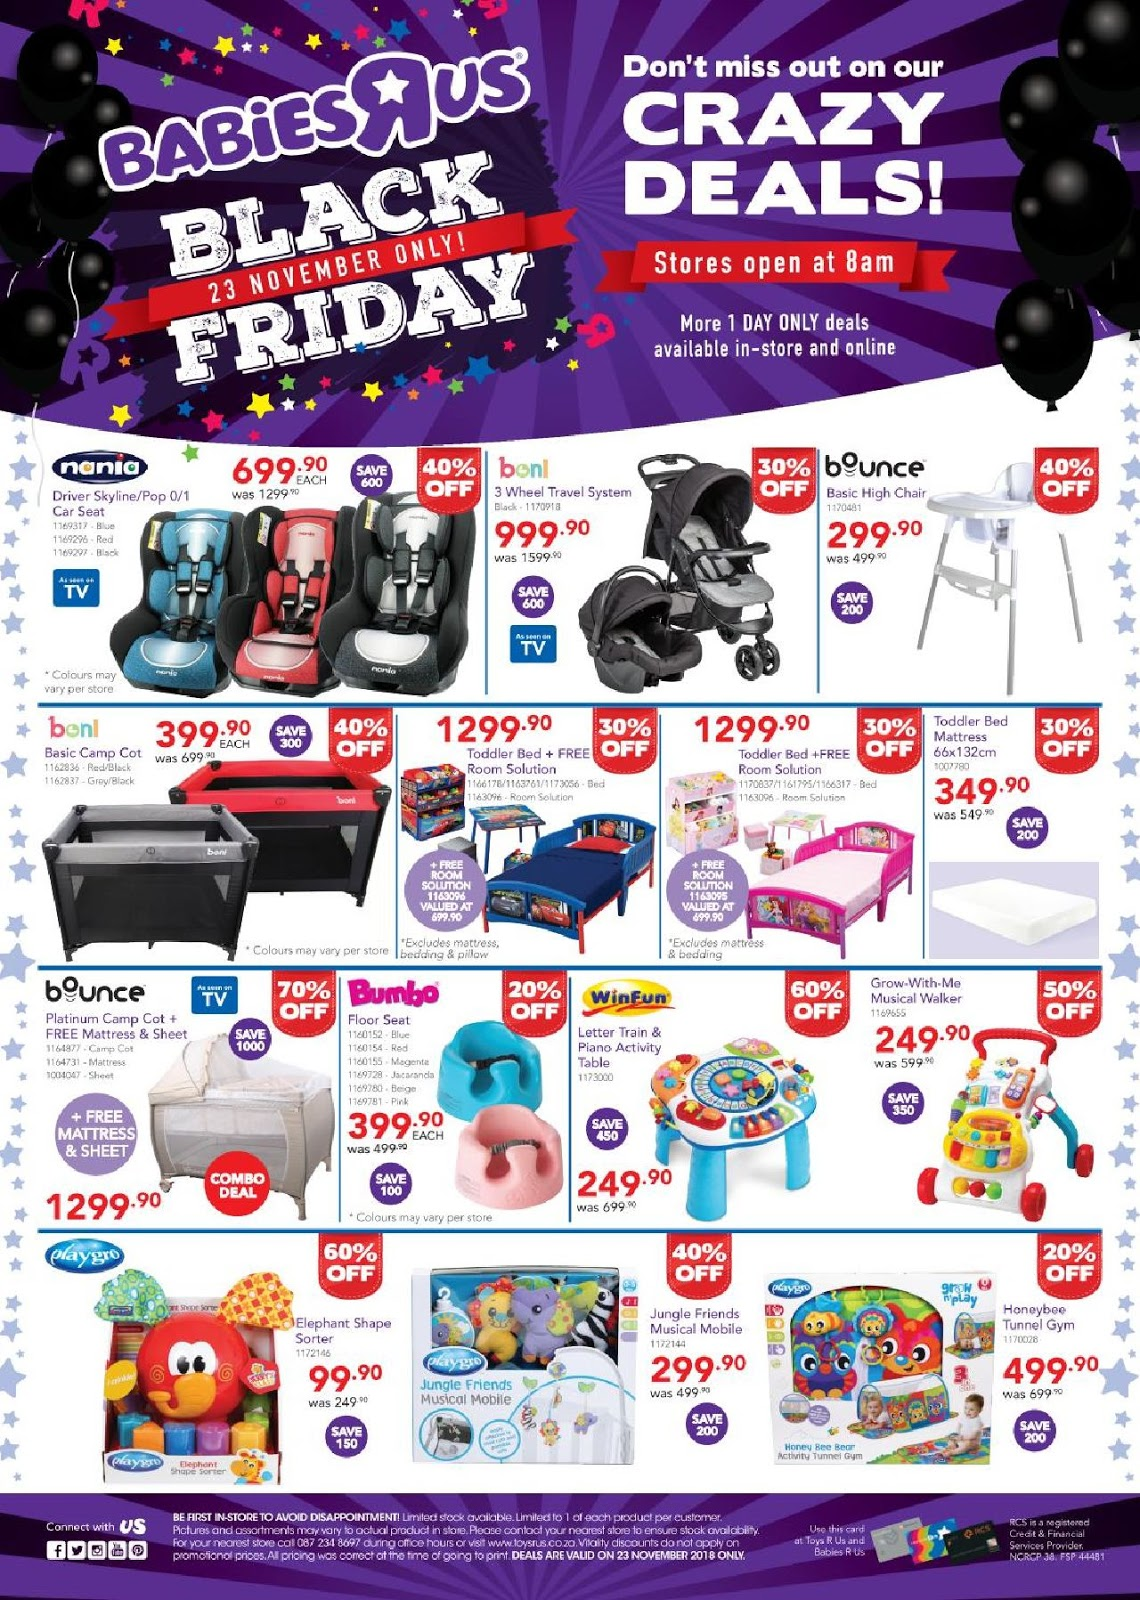 Babies R Us Black Friday Deals & Special Sale 2019 # ...